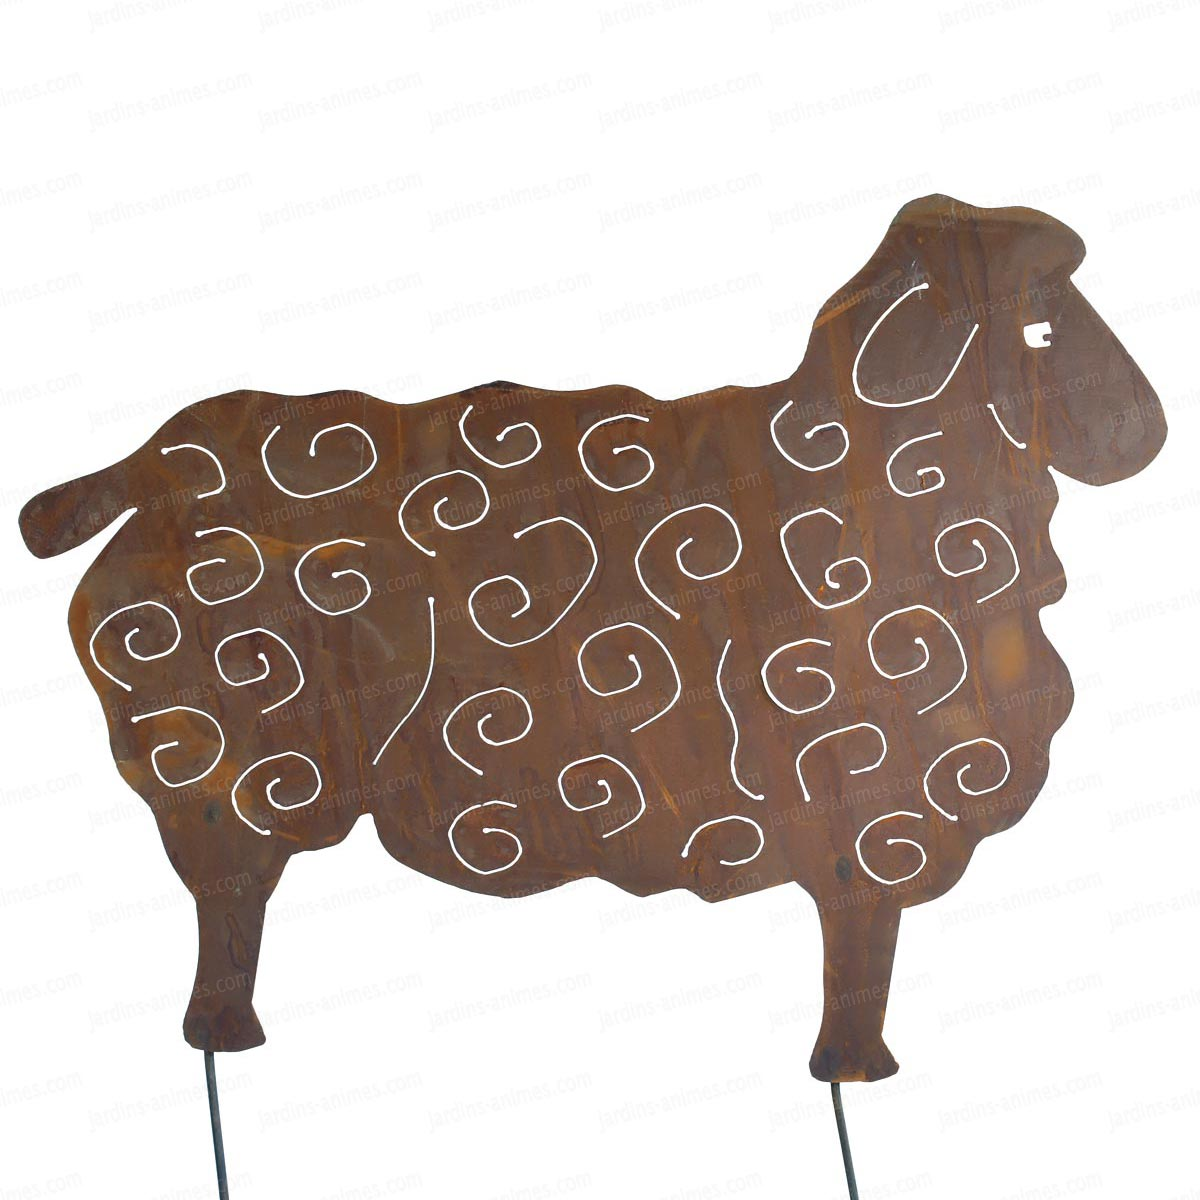 Silhouette mouton au choix d co de jardin en m tal for Decoration jardin en metal